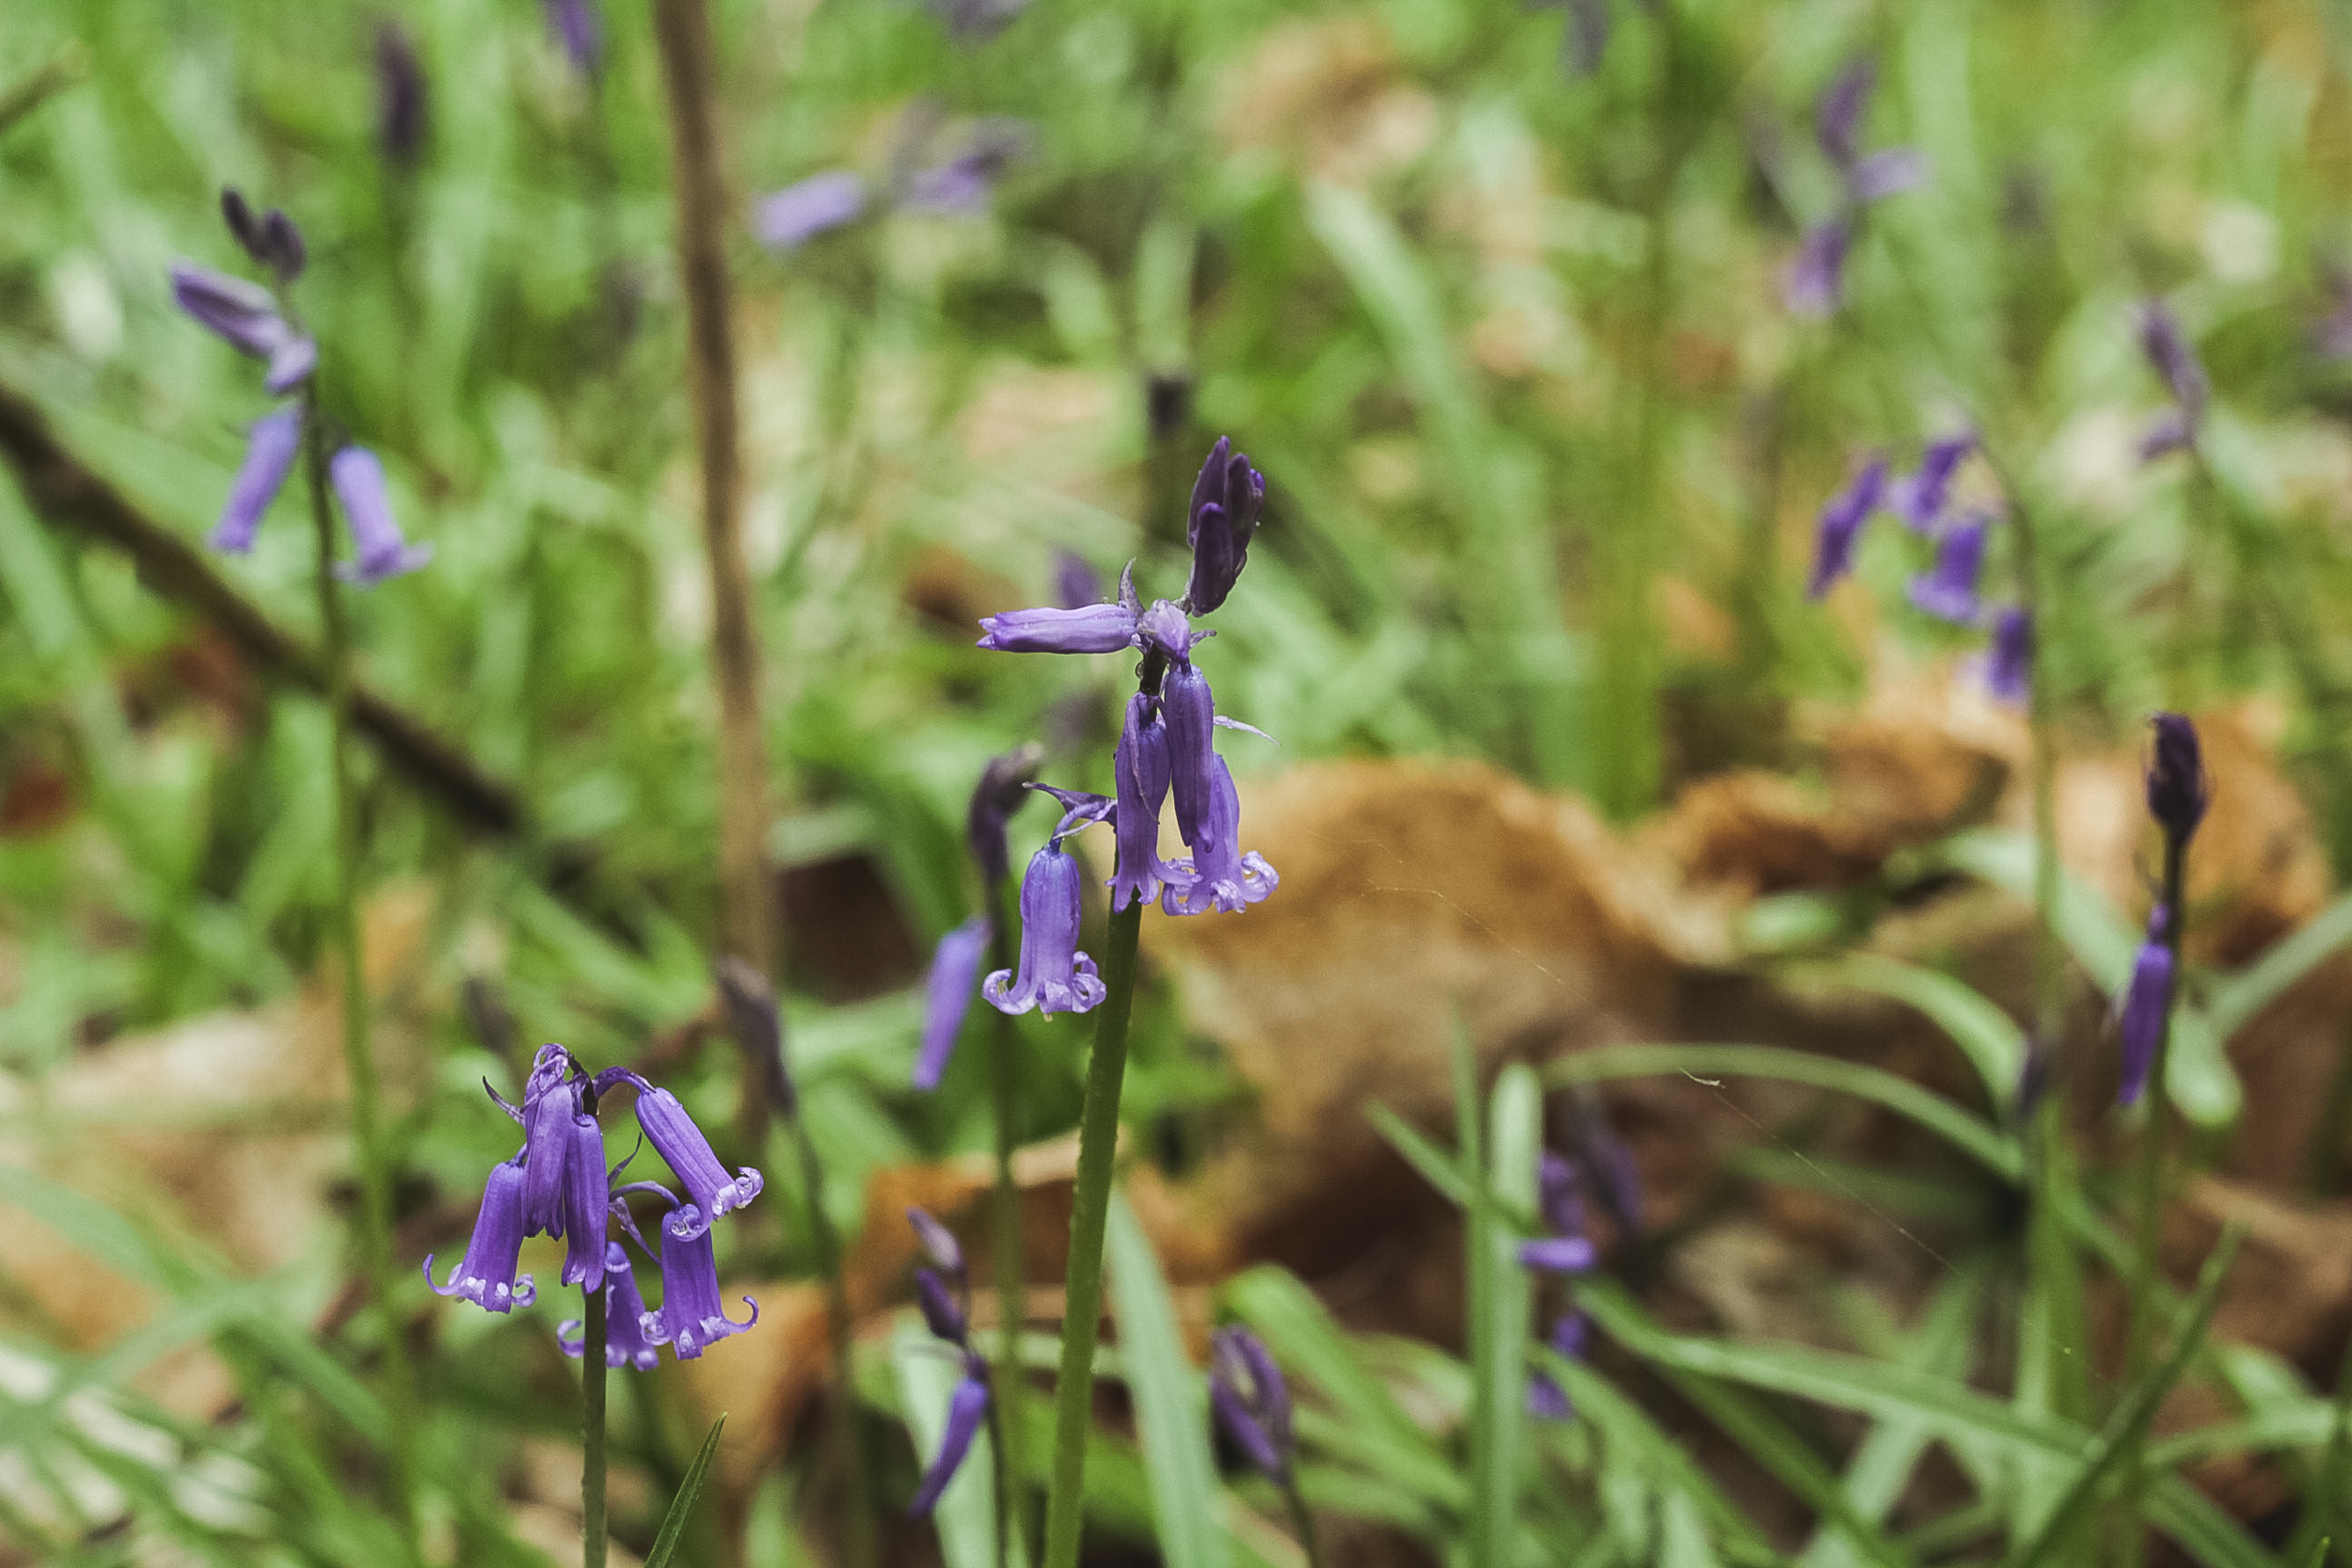 Kings wood in Kent, Bluebells | Seeds and Stitches blog